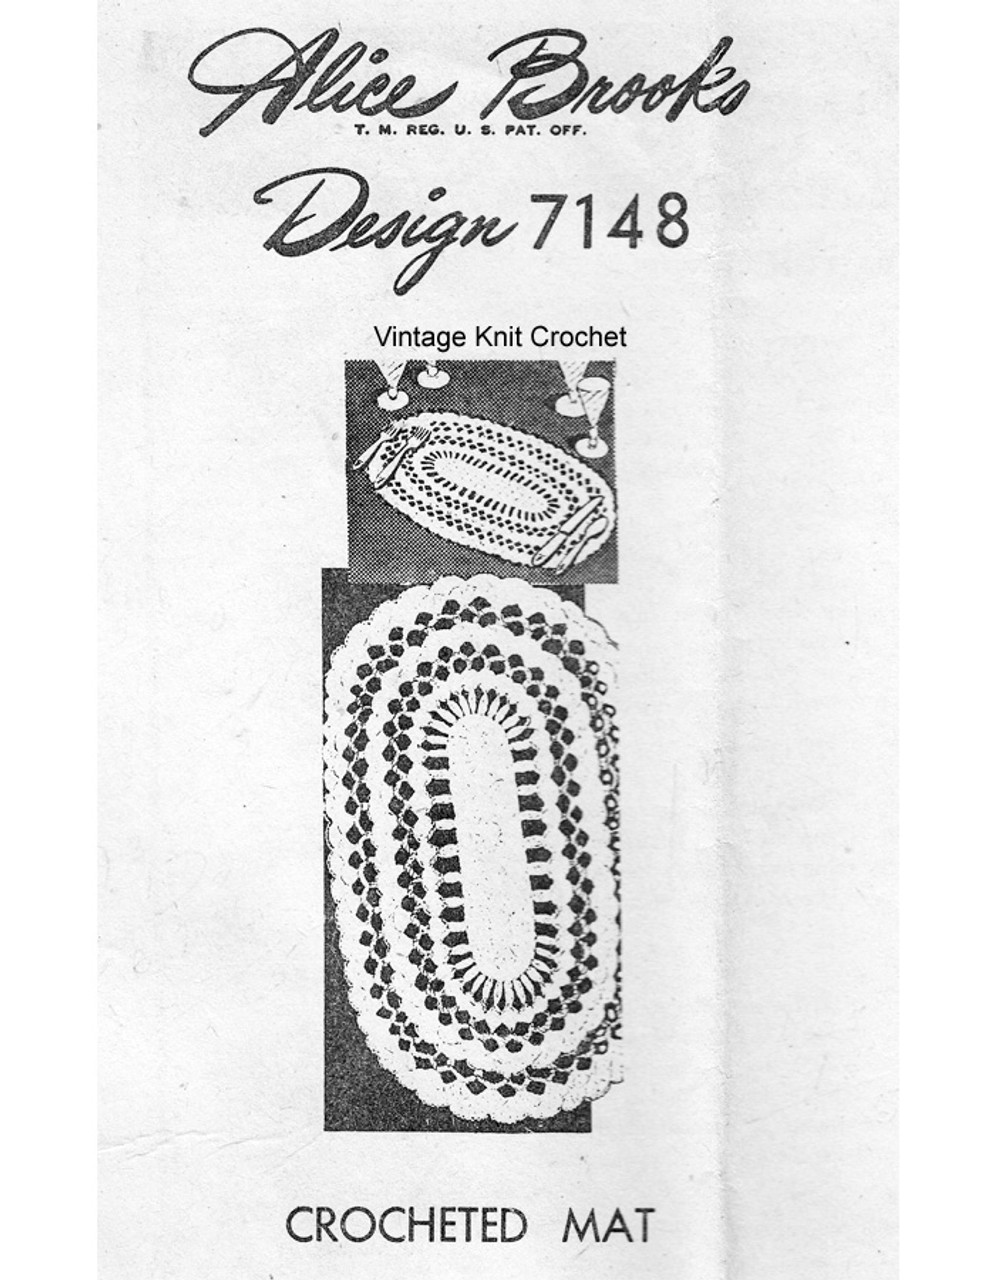 Oval Placemat Crochet Pattern, Mail Order Design 7148